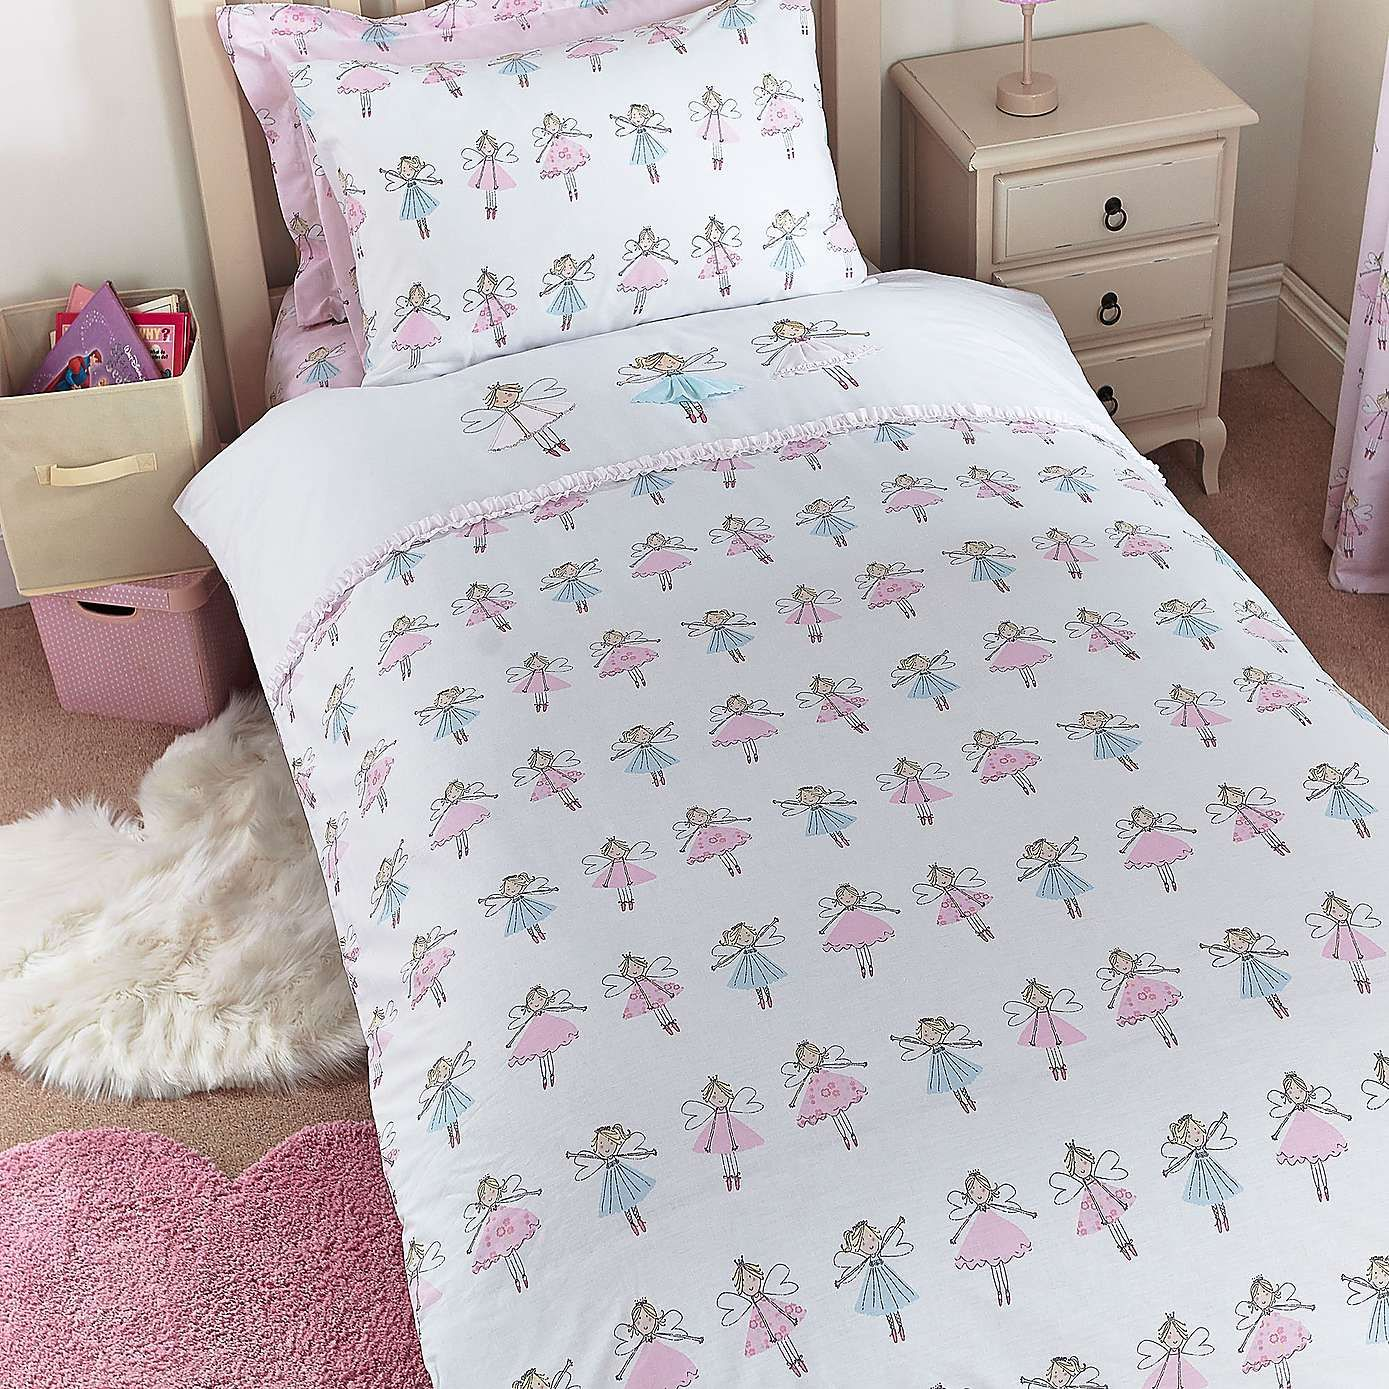 rose bedding willow duvet cover gray sweetgalas covers dusty comforter set white unbeatable king image nz shams sets black dkny top size twin gold imports and blush queen hot pier light pink